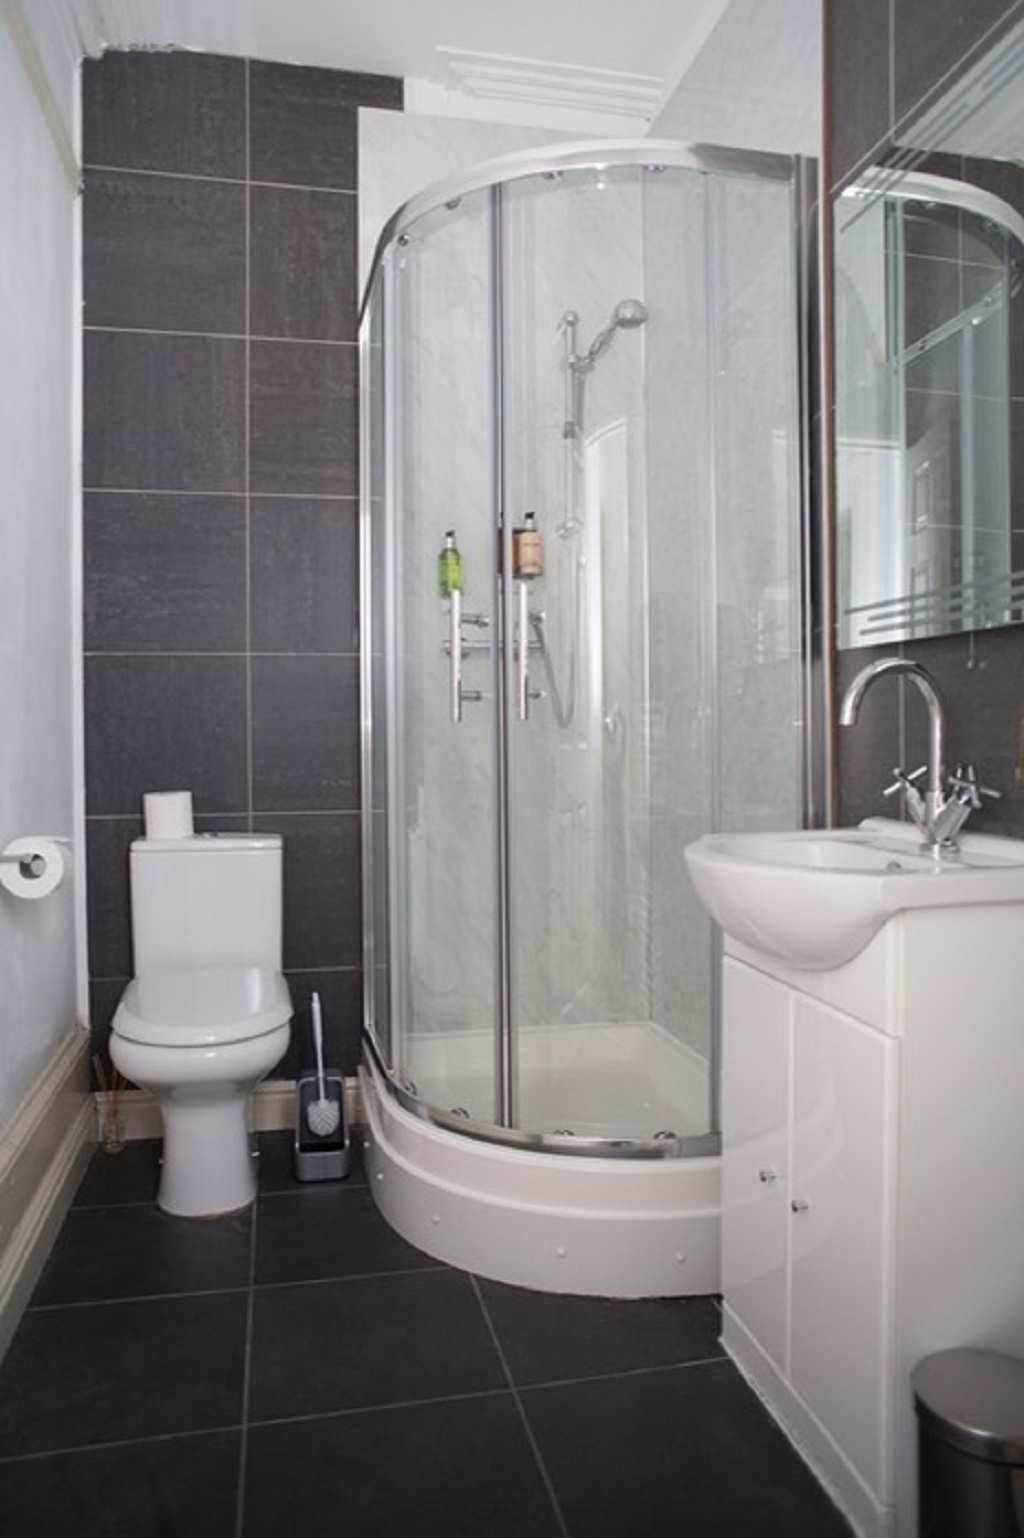 Sink at Quire Court Apartment, Centre, Gloucester - Citybase Apartments